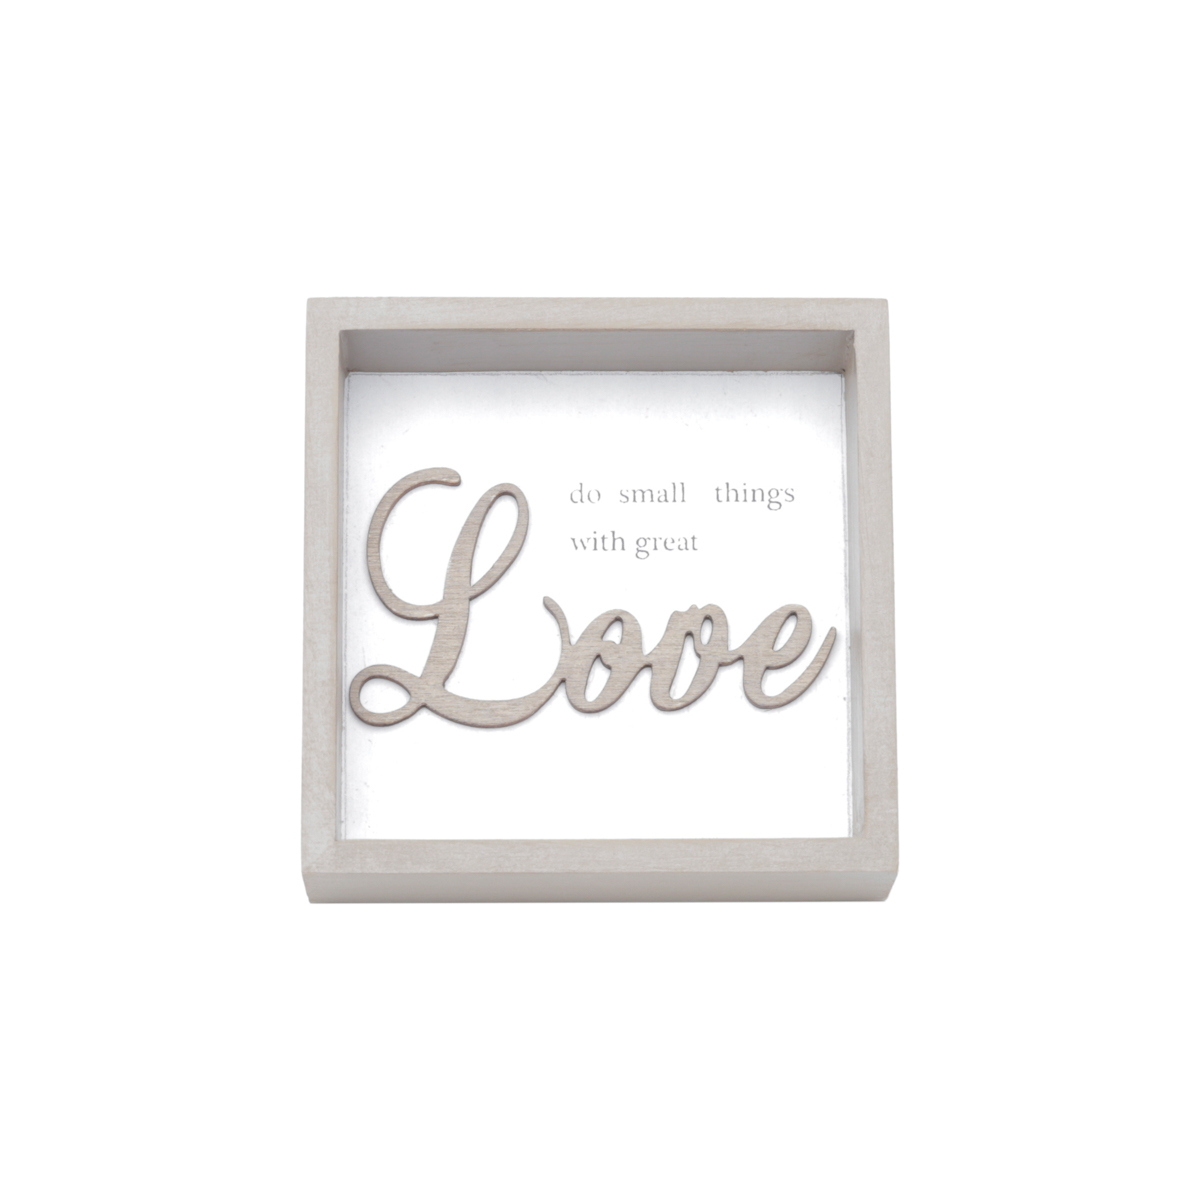 Quadro Madeira Square Small Things Great Love Fd Branco 10 x 3 x 10 cm